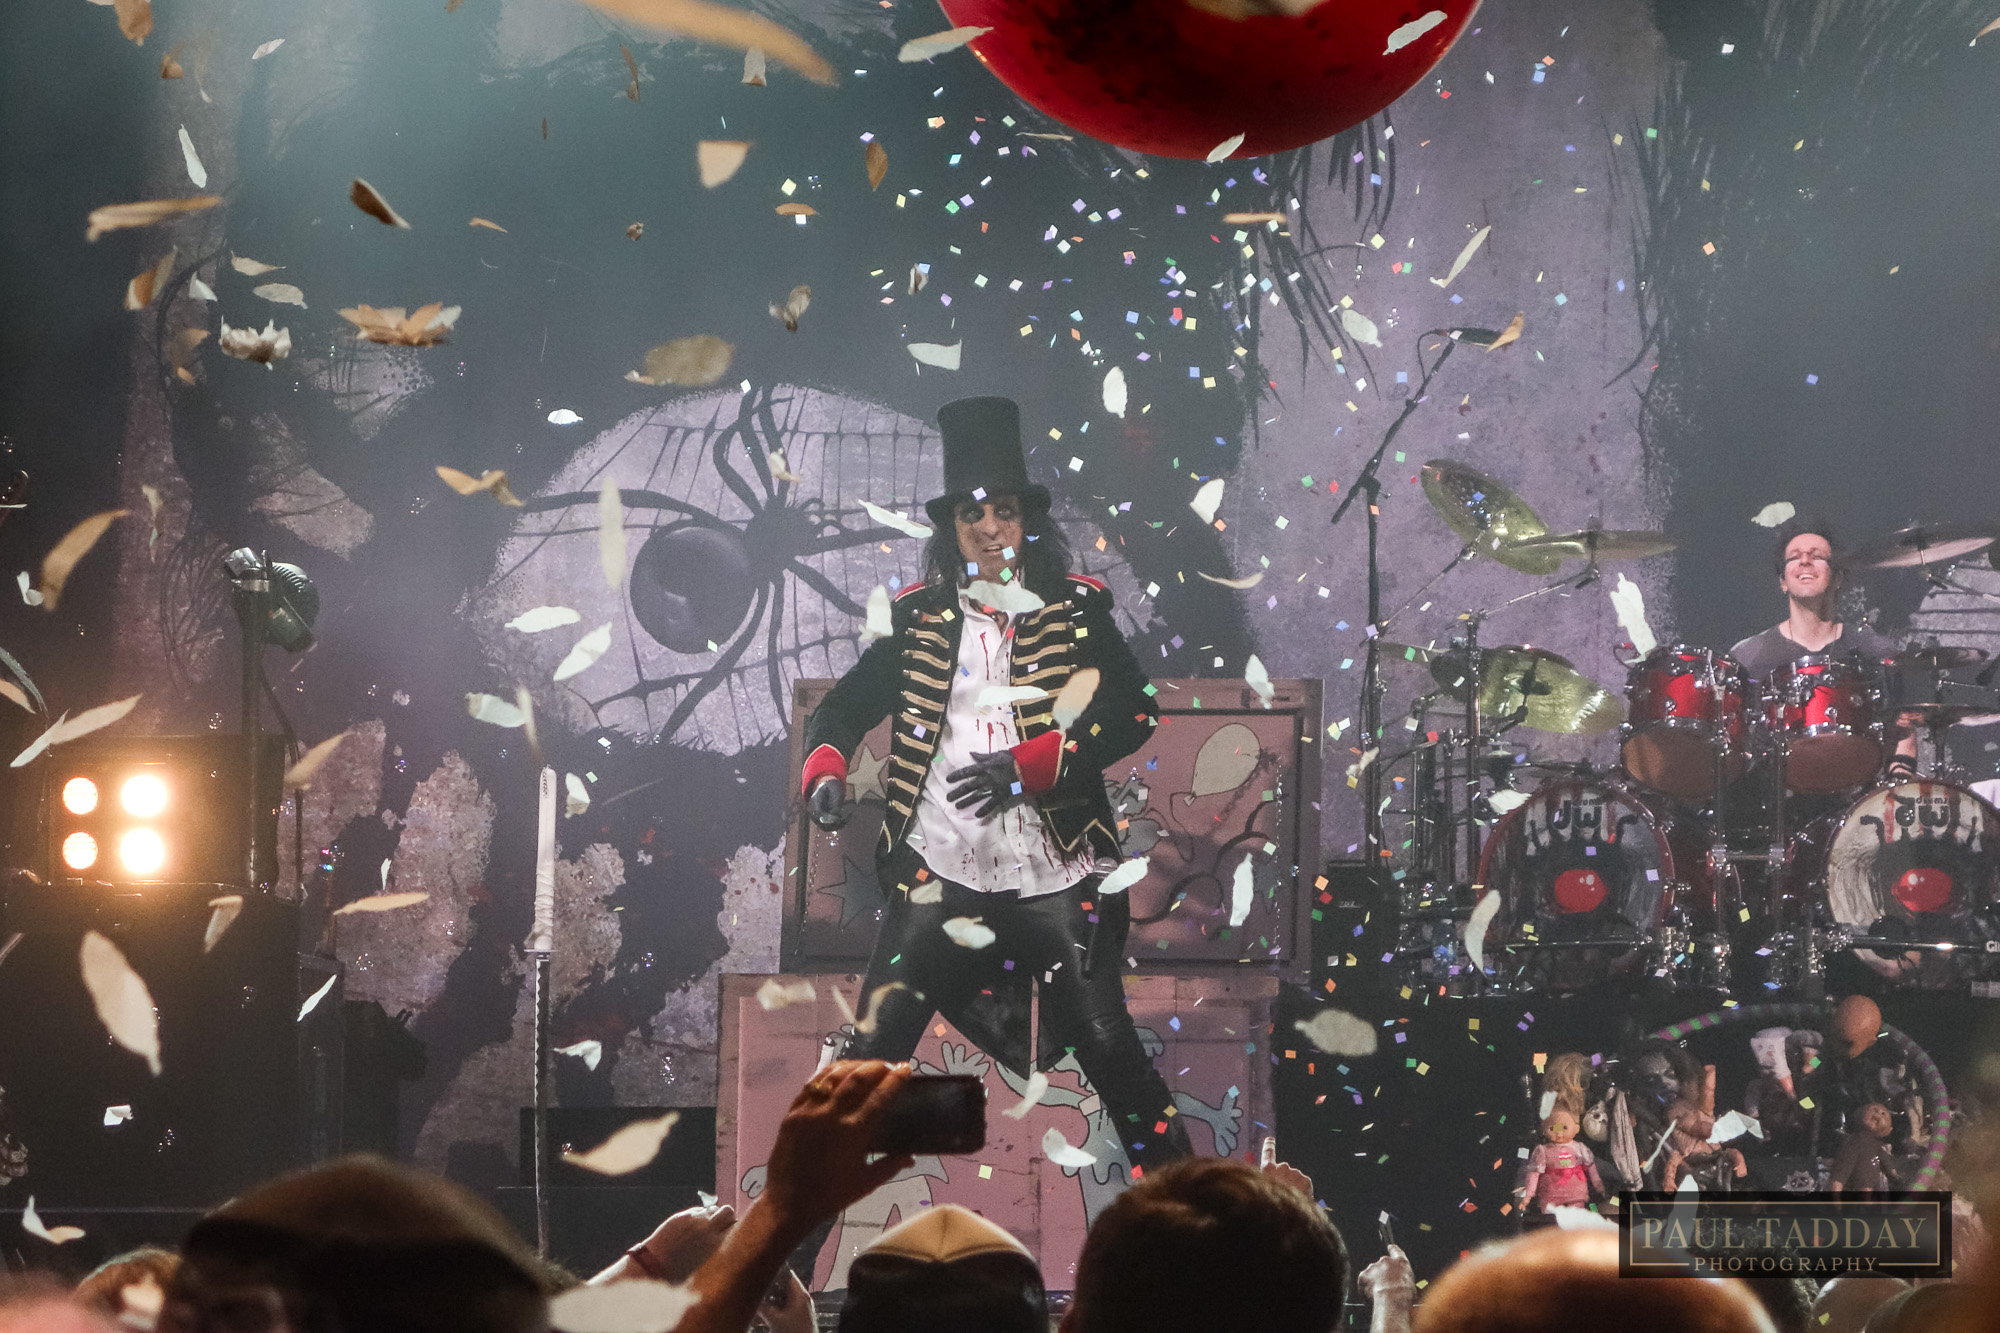 alice cooper - melbourne - paul tadday photography - 201017 - 57.jpg